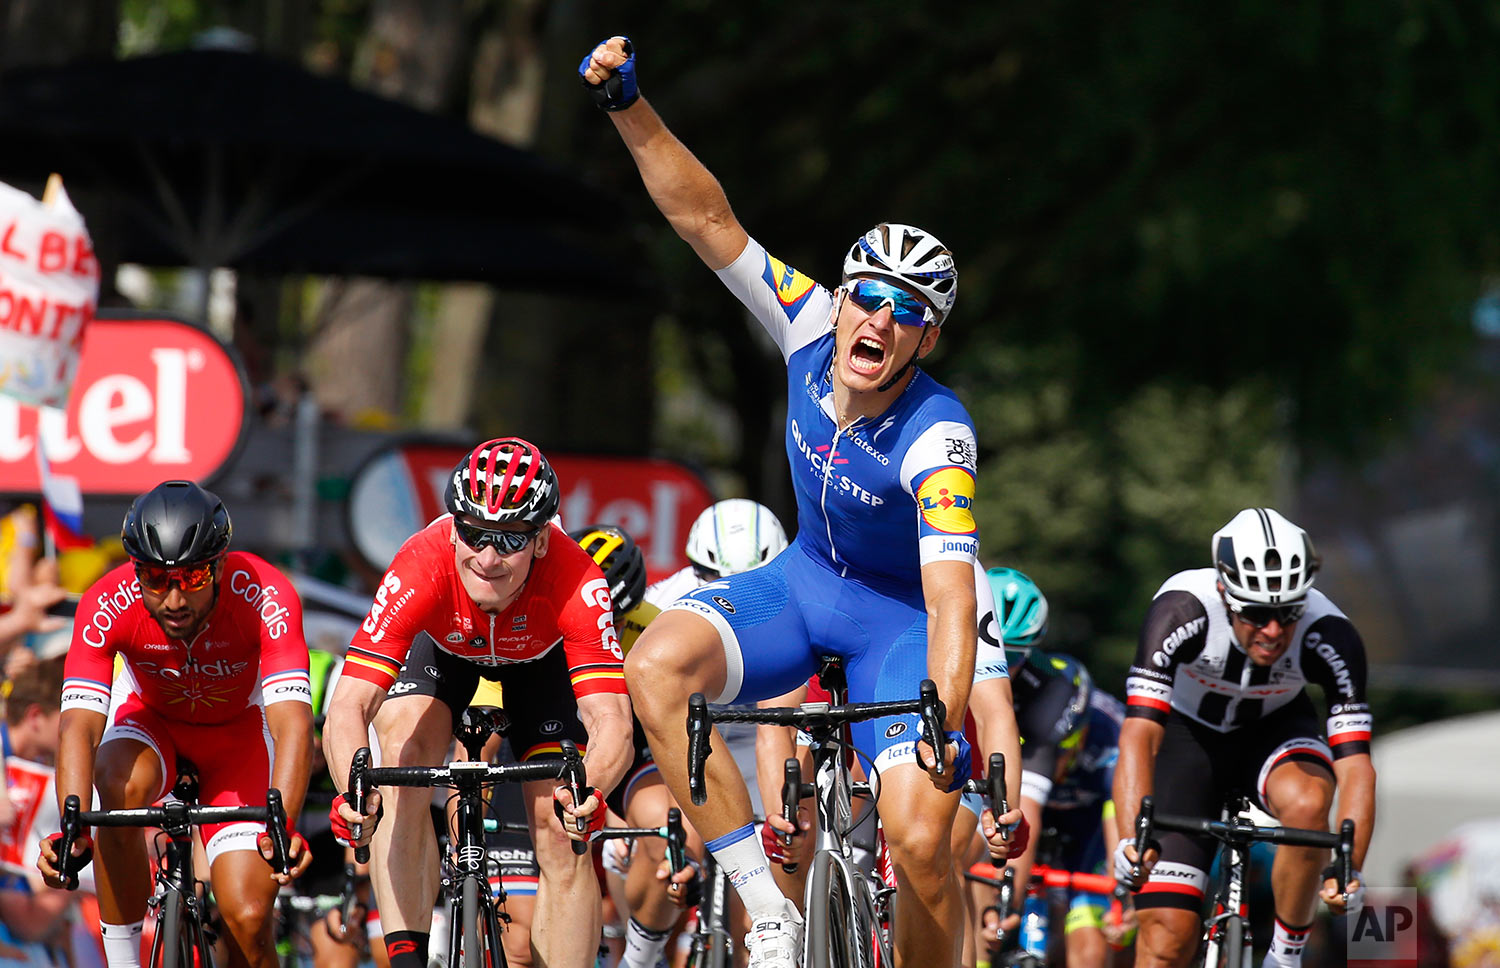 Germany's sprinter Marcel Kittel celebrates next to Germany's Andre Greipel, center center left, as he crosses the finish line to win the sixth stage of the Tour de France cycling race over 216 kilometers (134 miles) with start in Vesoul and finish in Troyes, France, Thursday, July 6, 2017. (AP Photo/Peter Dejong)